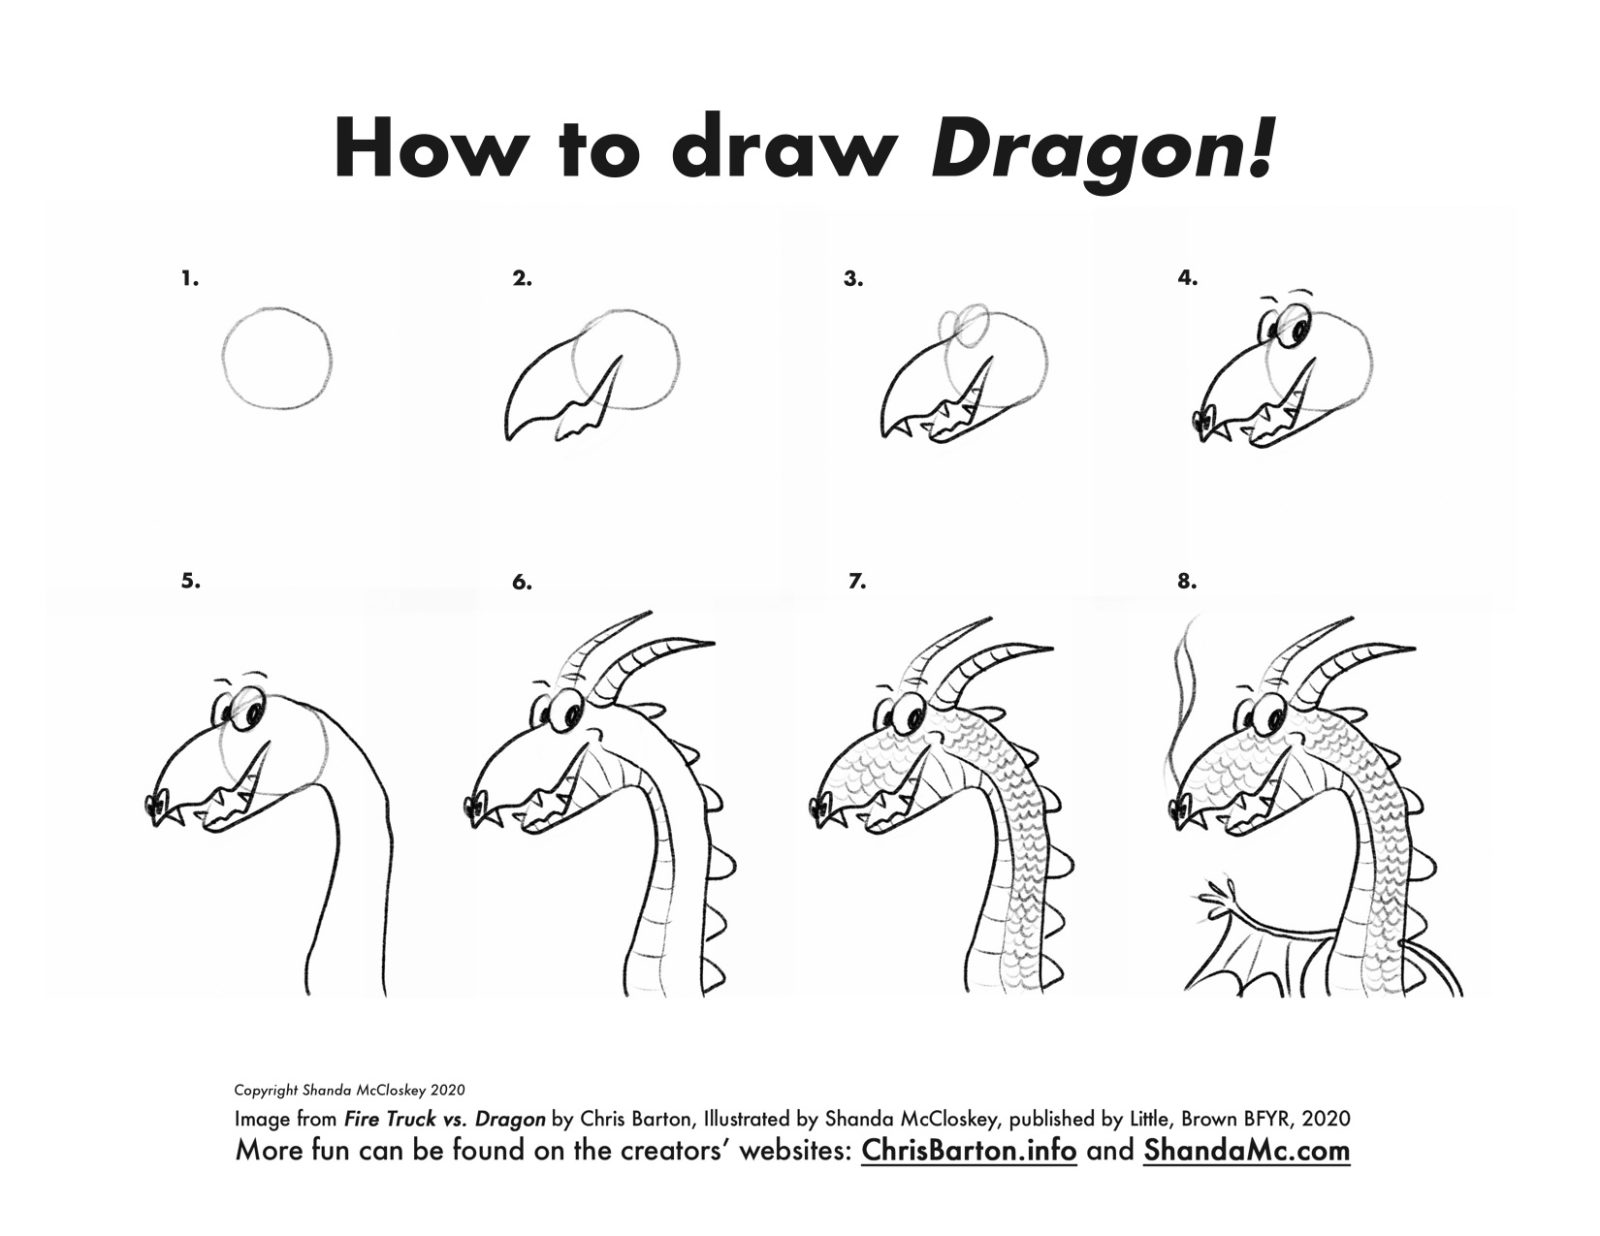 How-to-draw Dragon from the book Fire Truck vs. Dragon by Chris Barton, illustrated by Shanda McCloskey